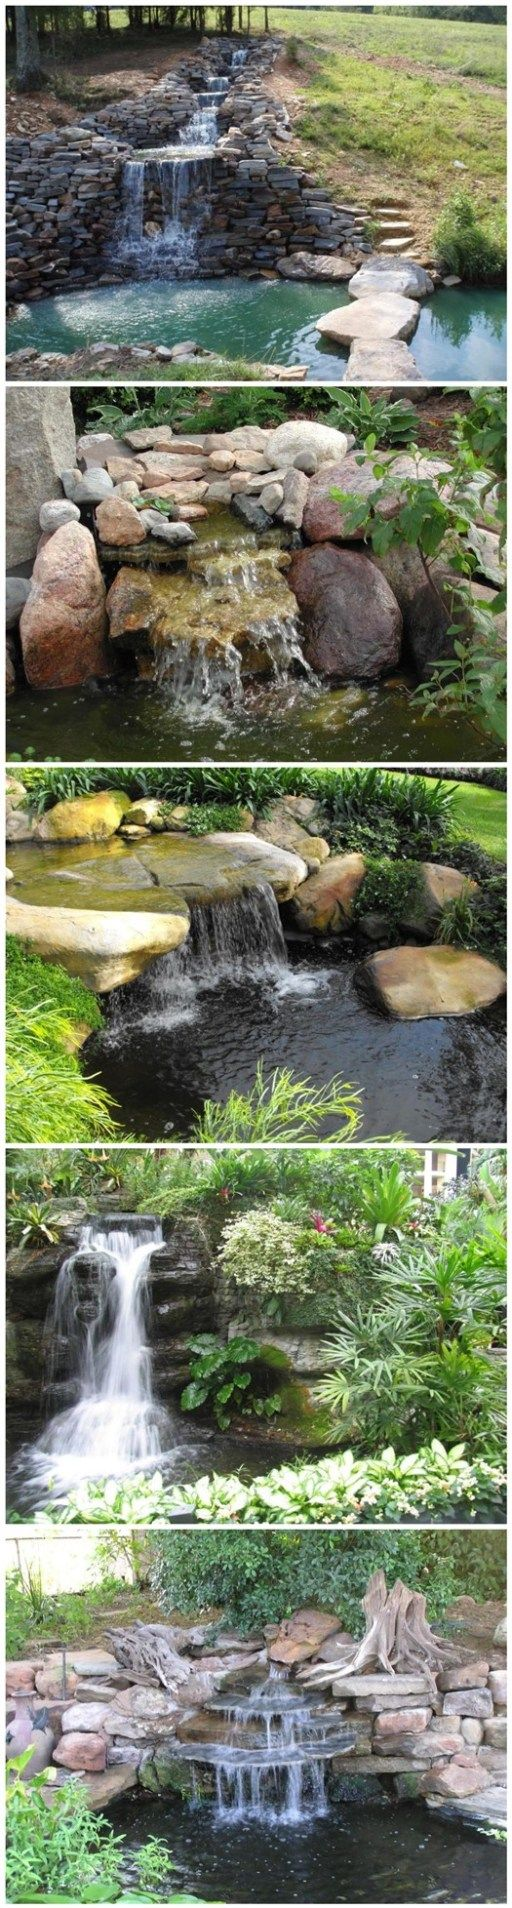 How to build a garden waterfall pond my blog dezdemon for Building a fountain pond